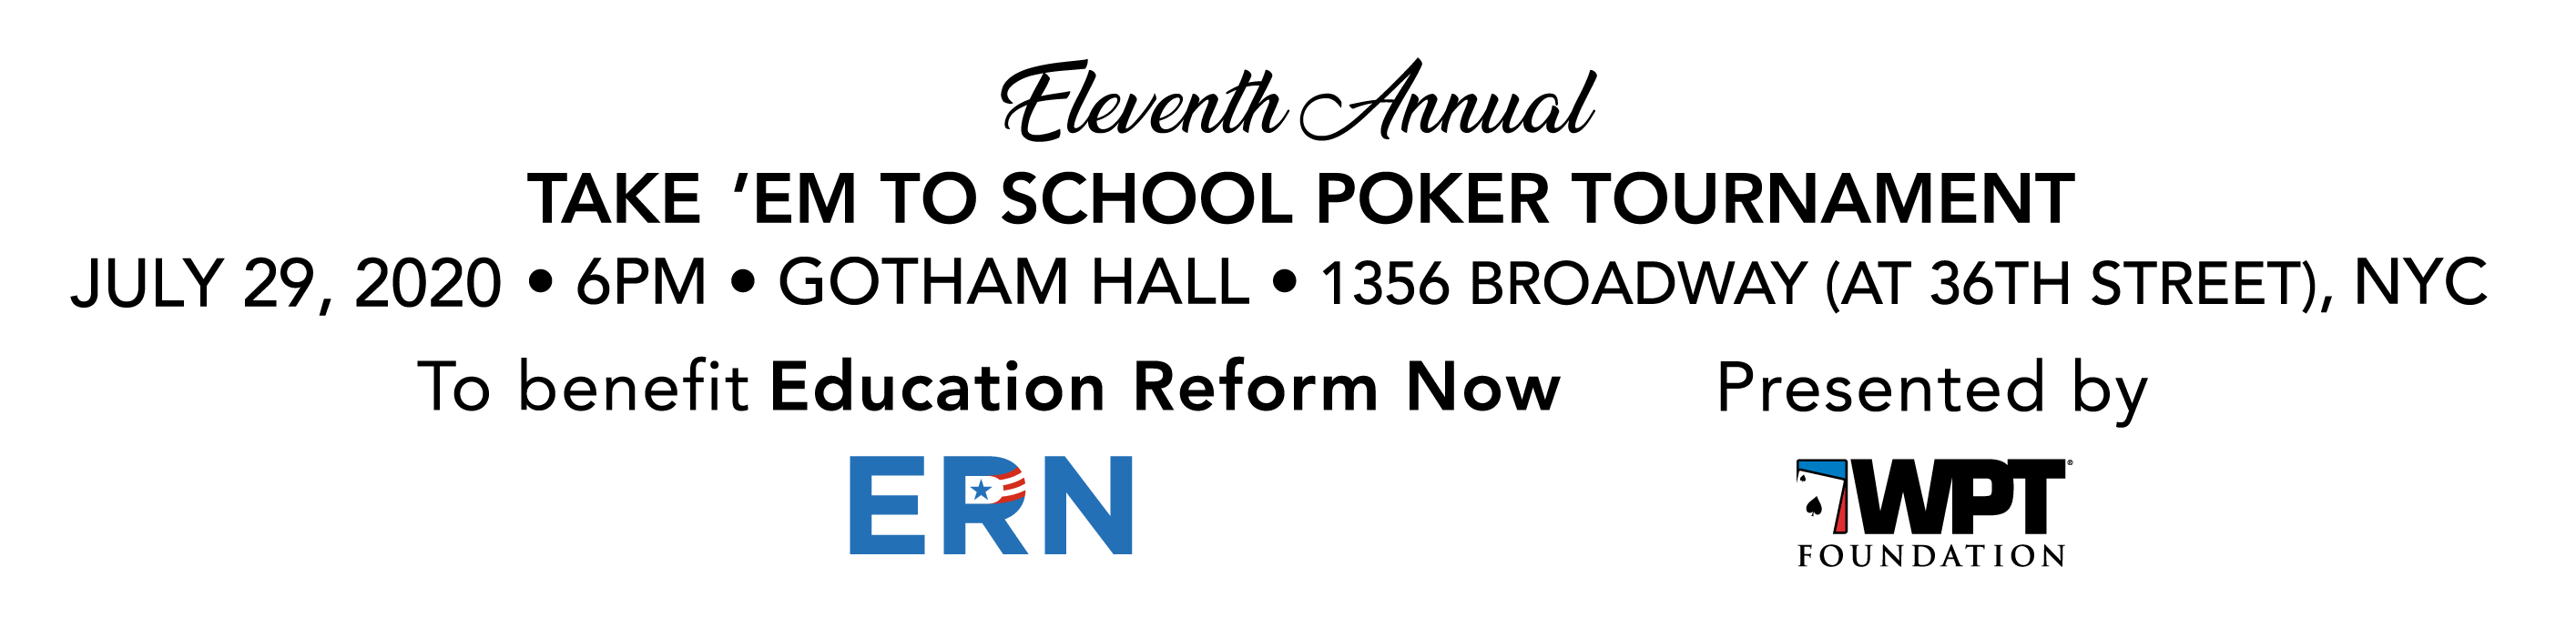 ERN Take 'Em to School Poker Tournament 2020